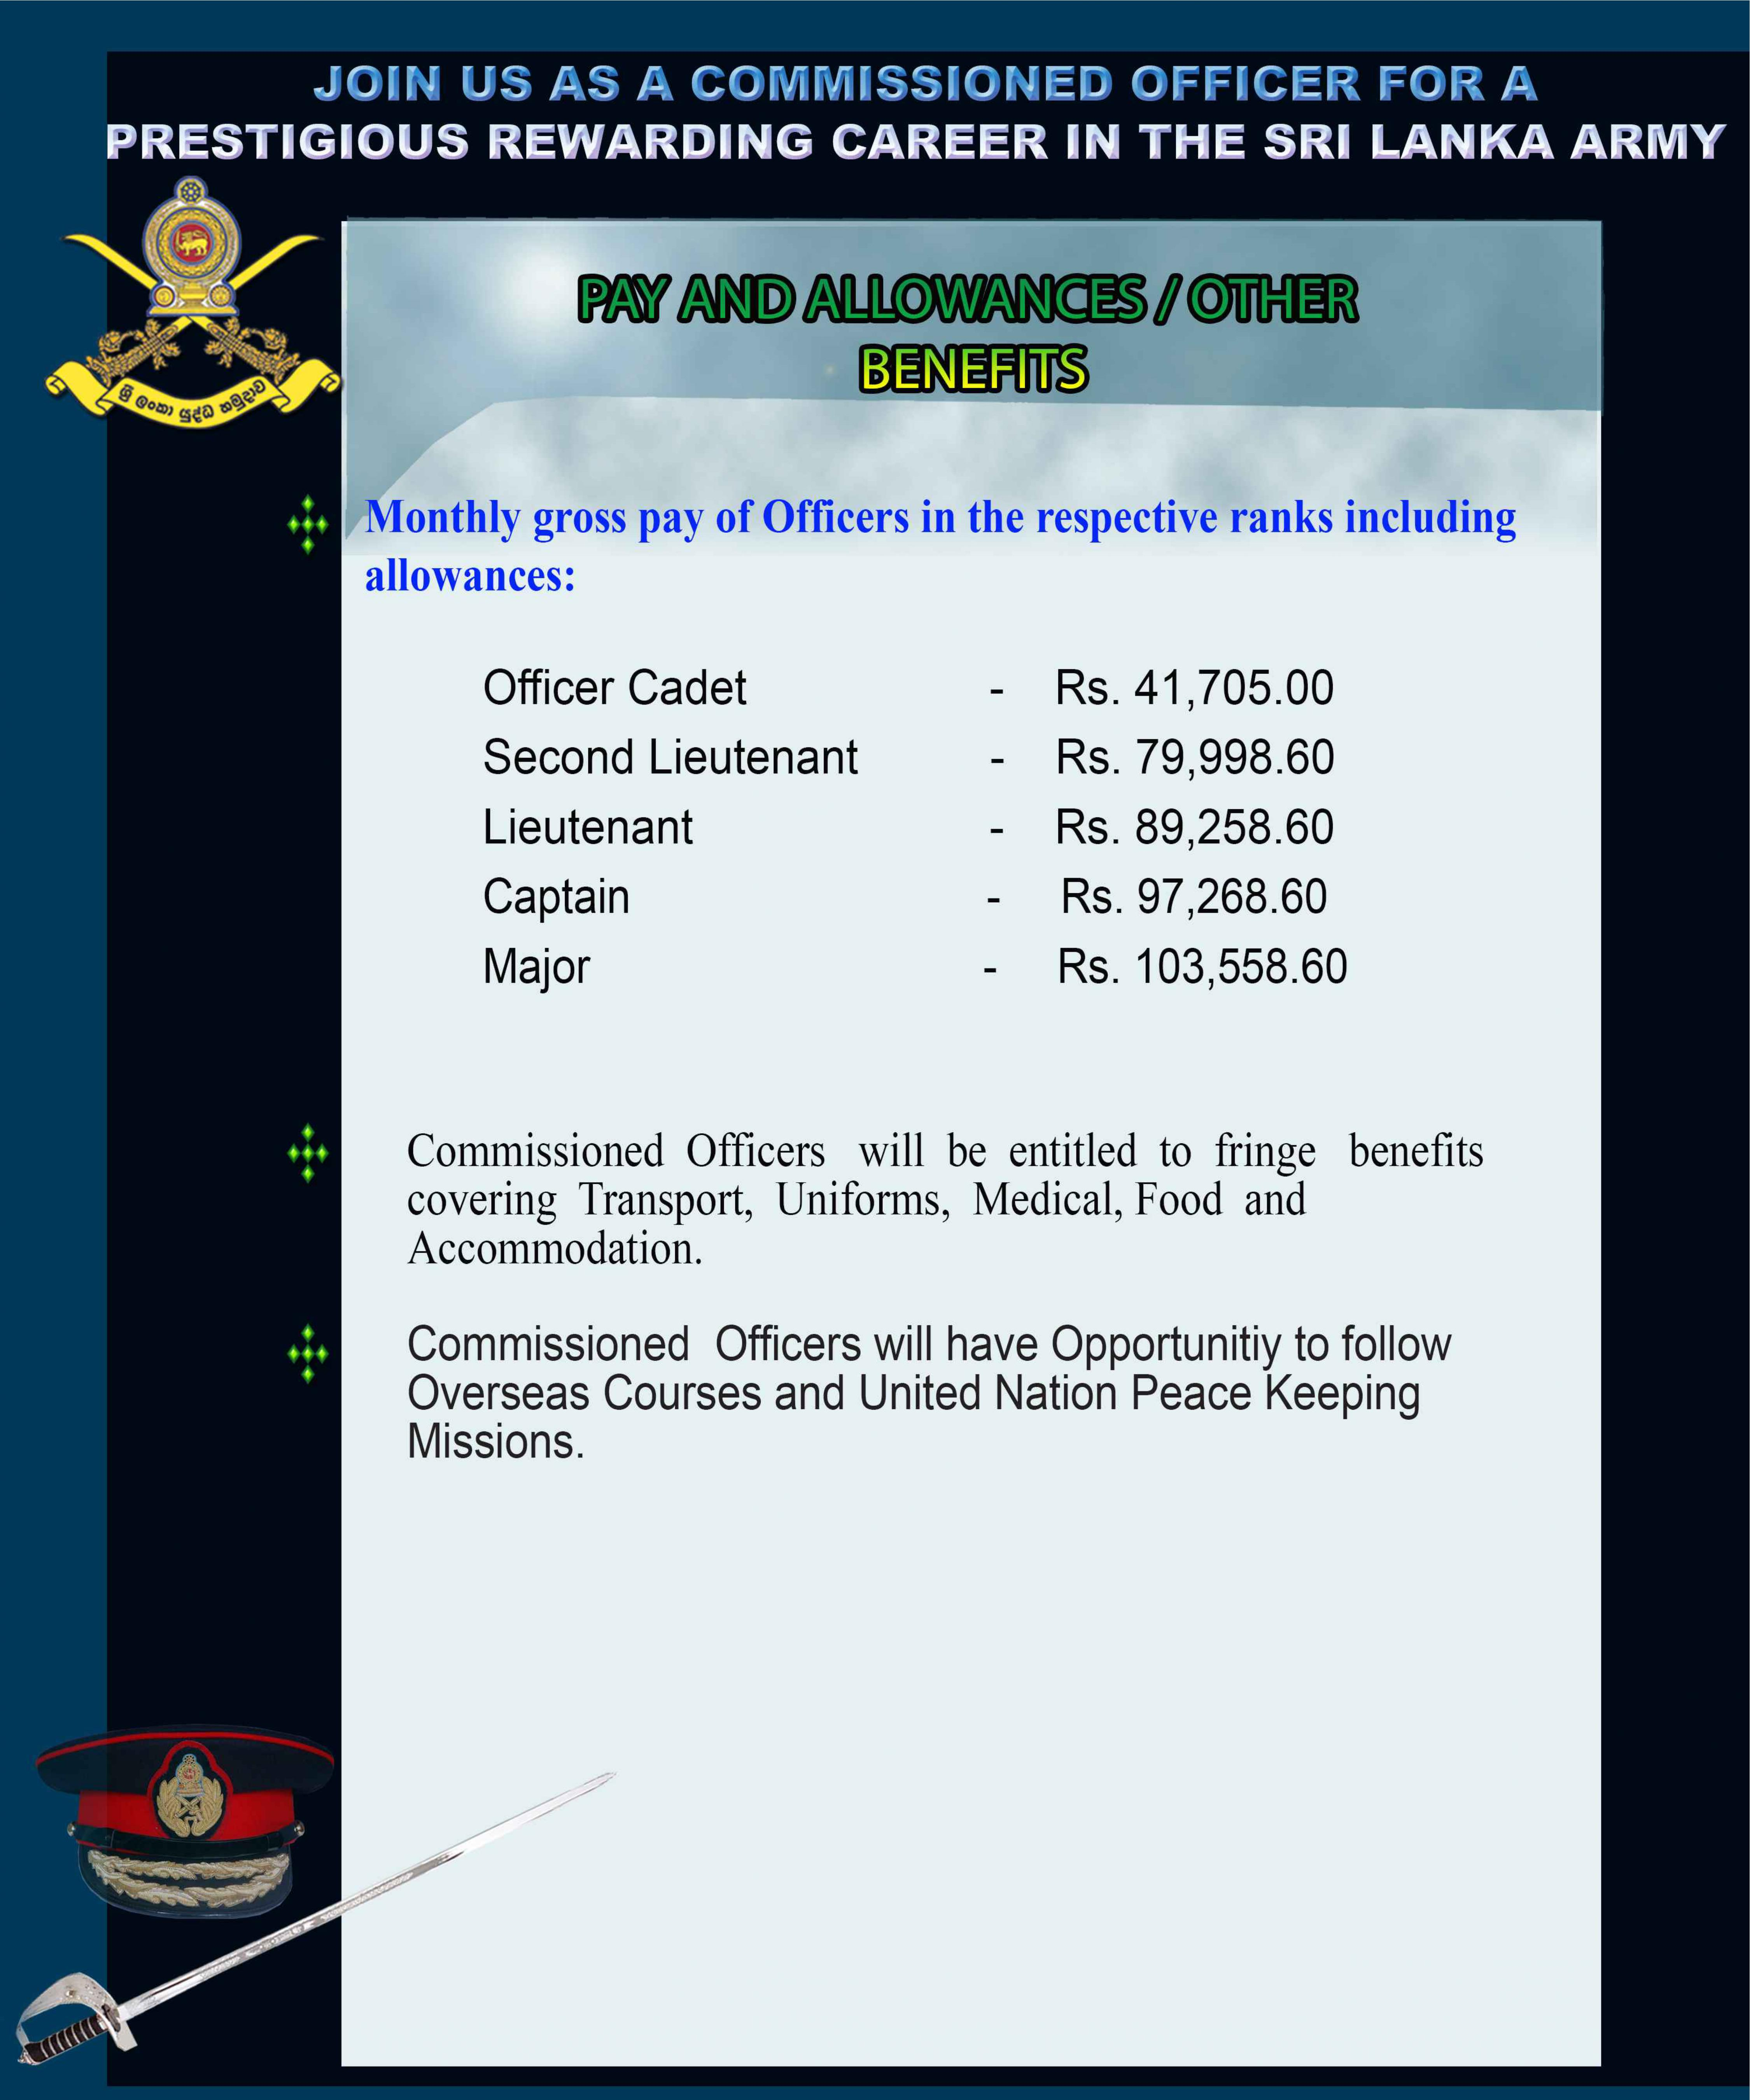 Join with Sri Lanka Army | Officer Vacancies Sri Lanka Army | Military Vacancies